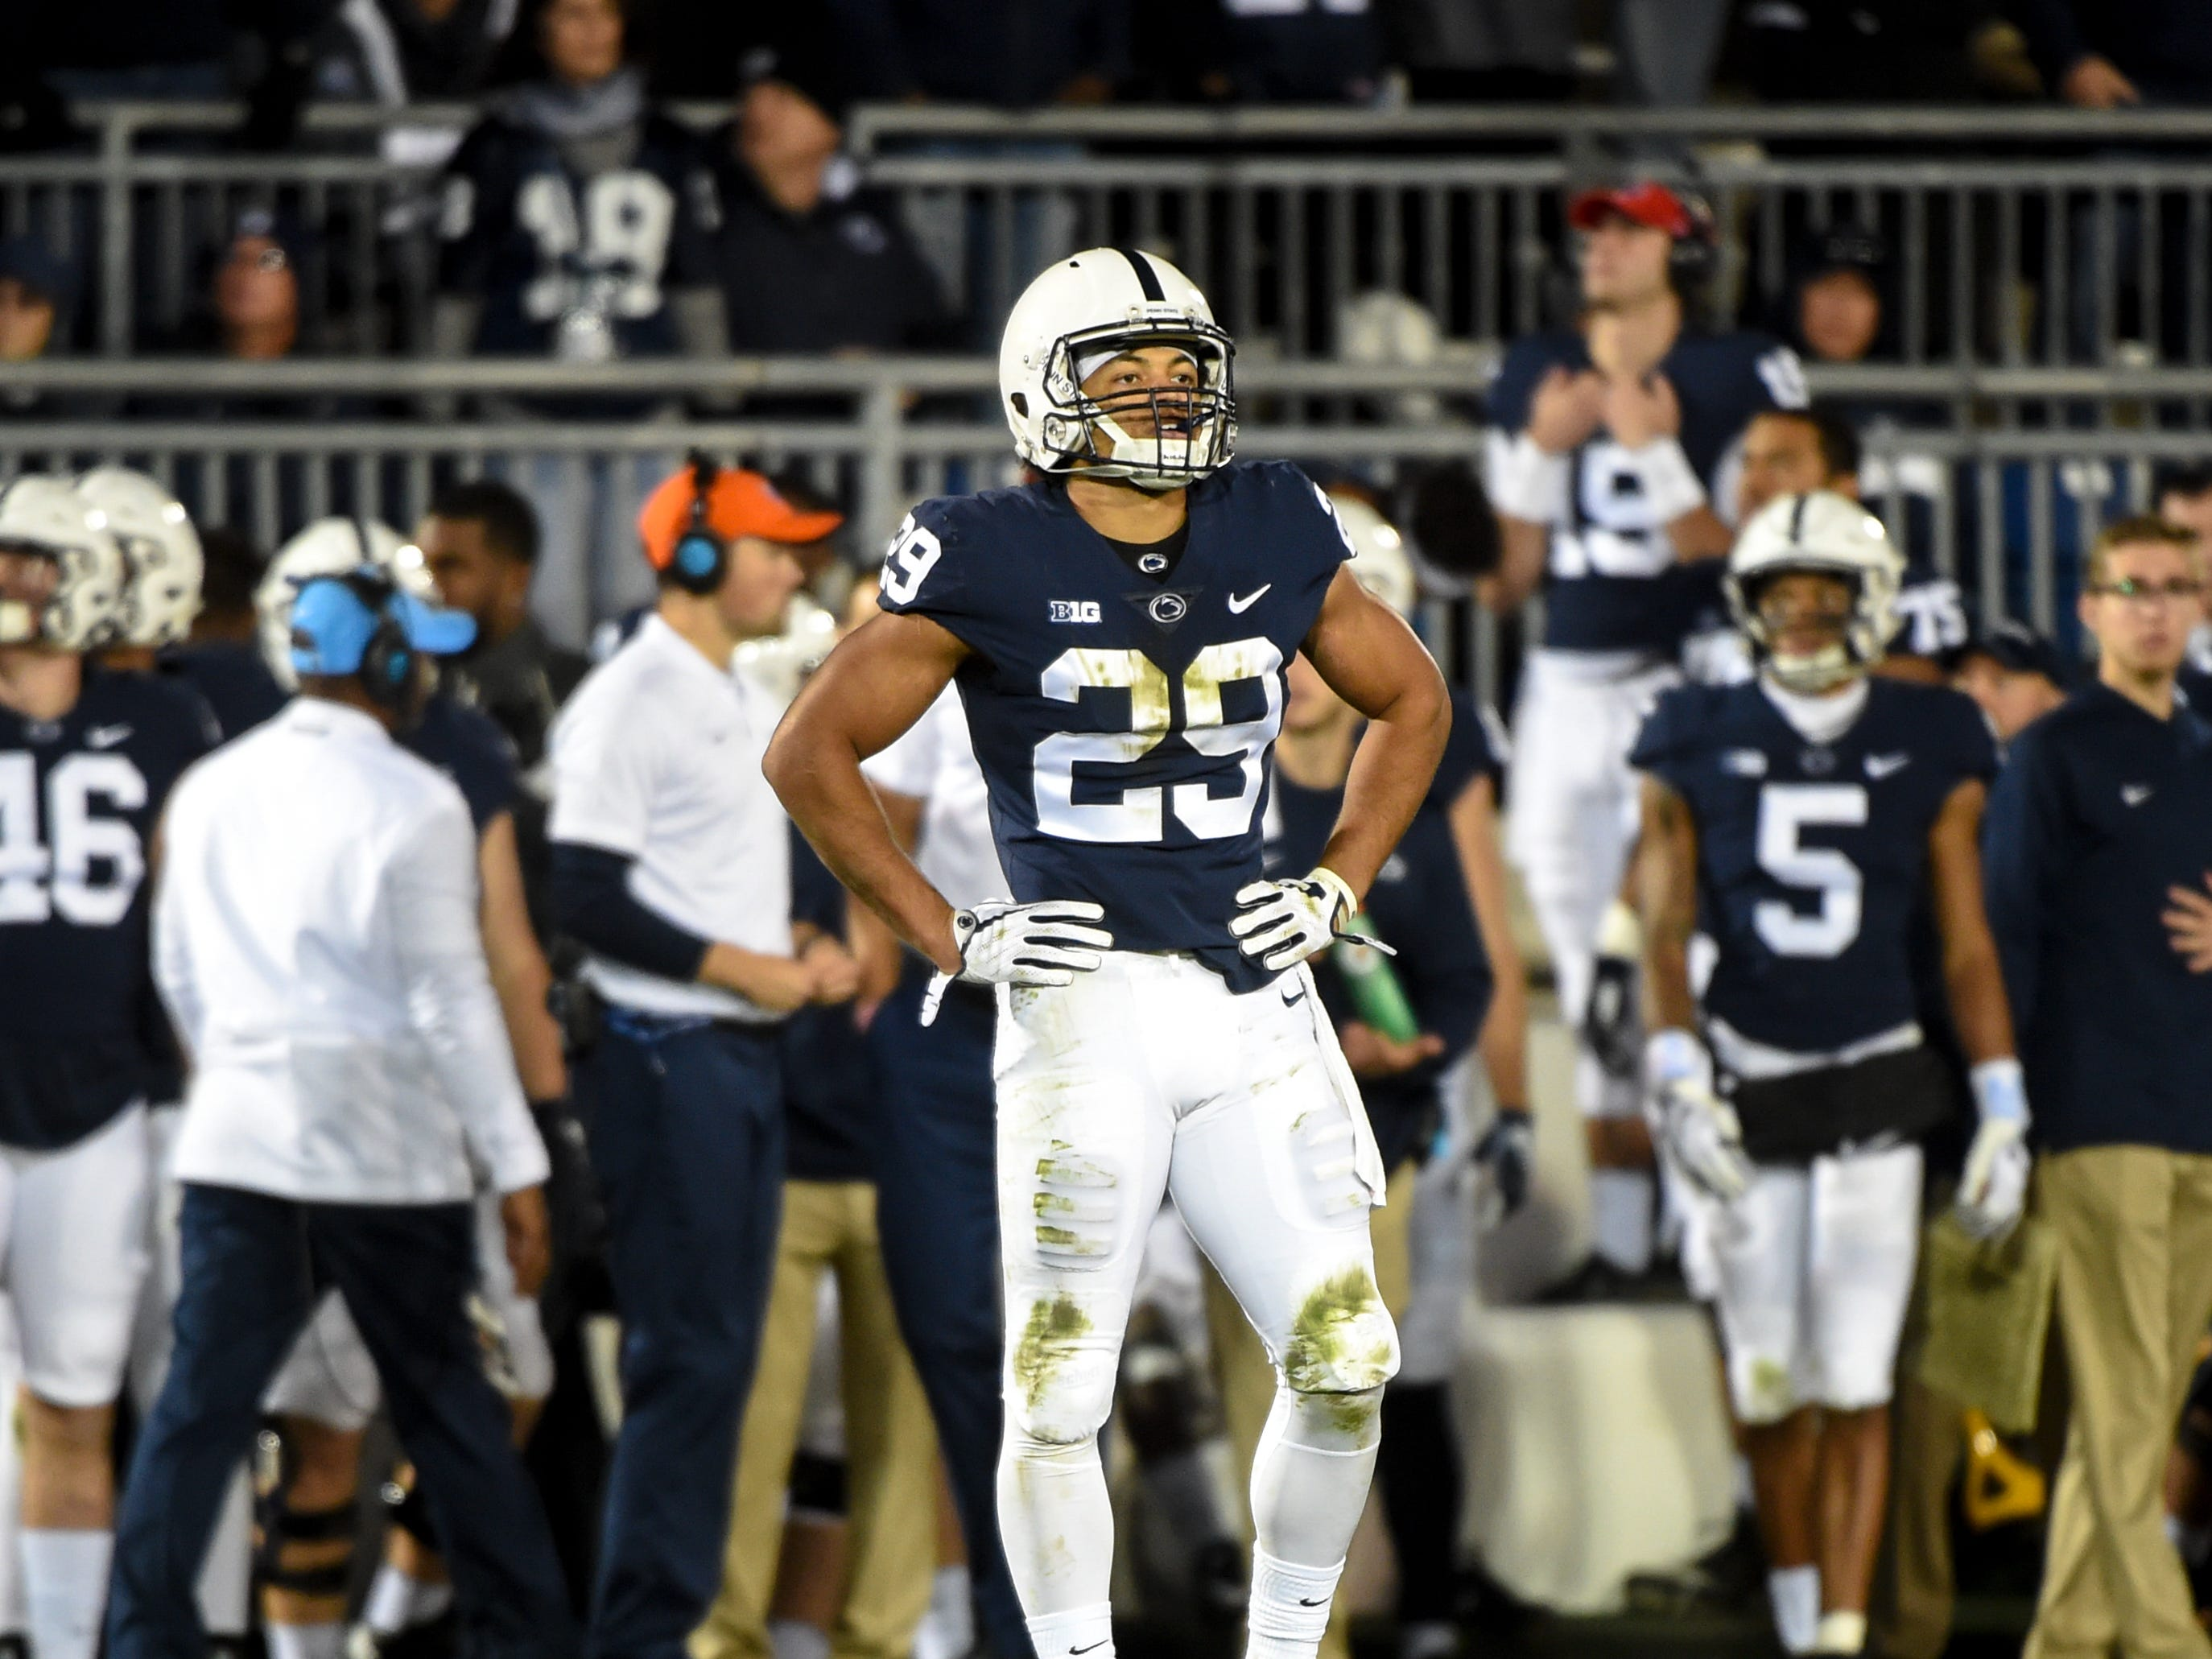 John Reid (29) waits for the next play during the Penn State Homecoming game against Michigan State, October 13, 2018. The Nittany Lions fell to the Spartans 17-21.